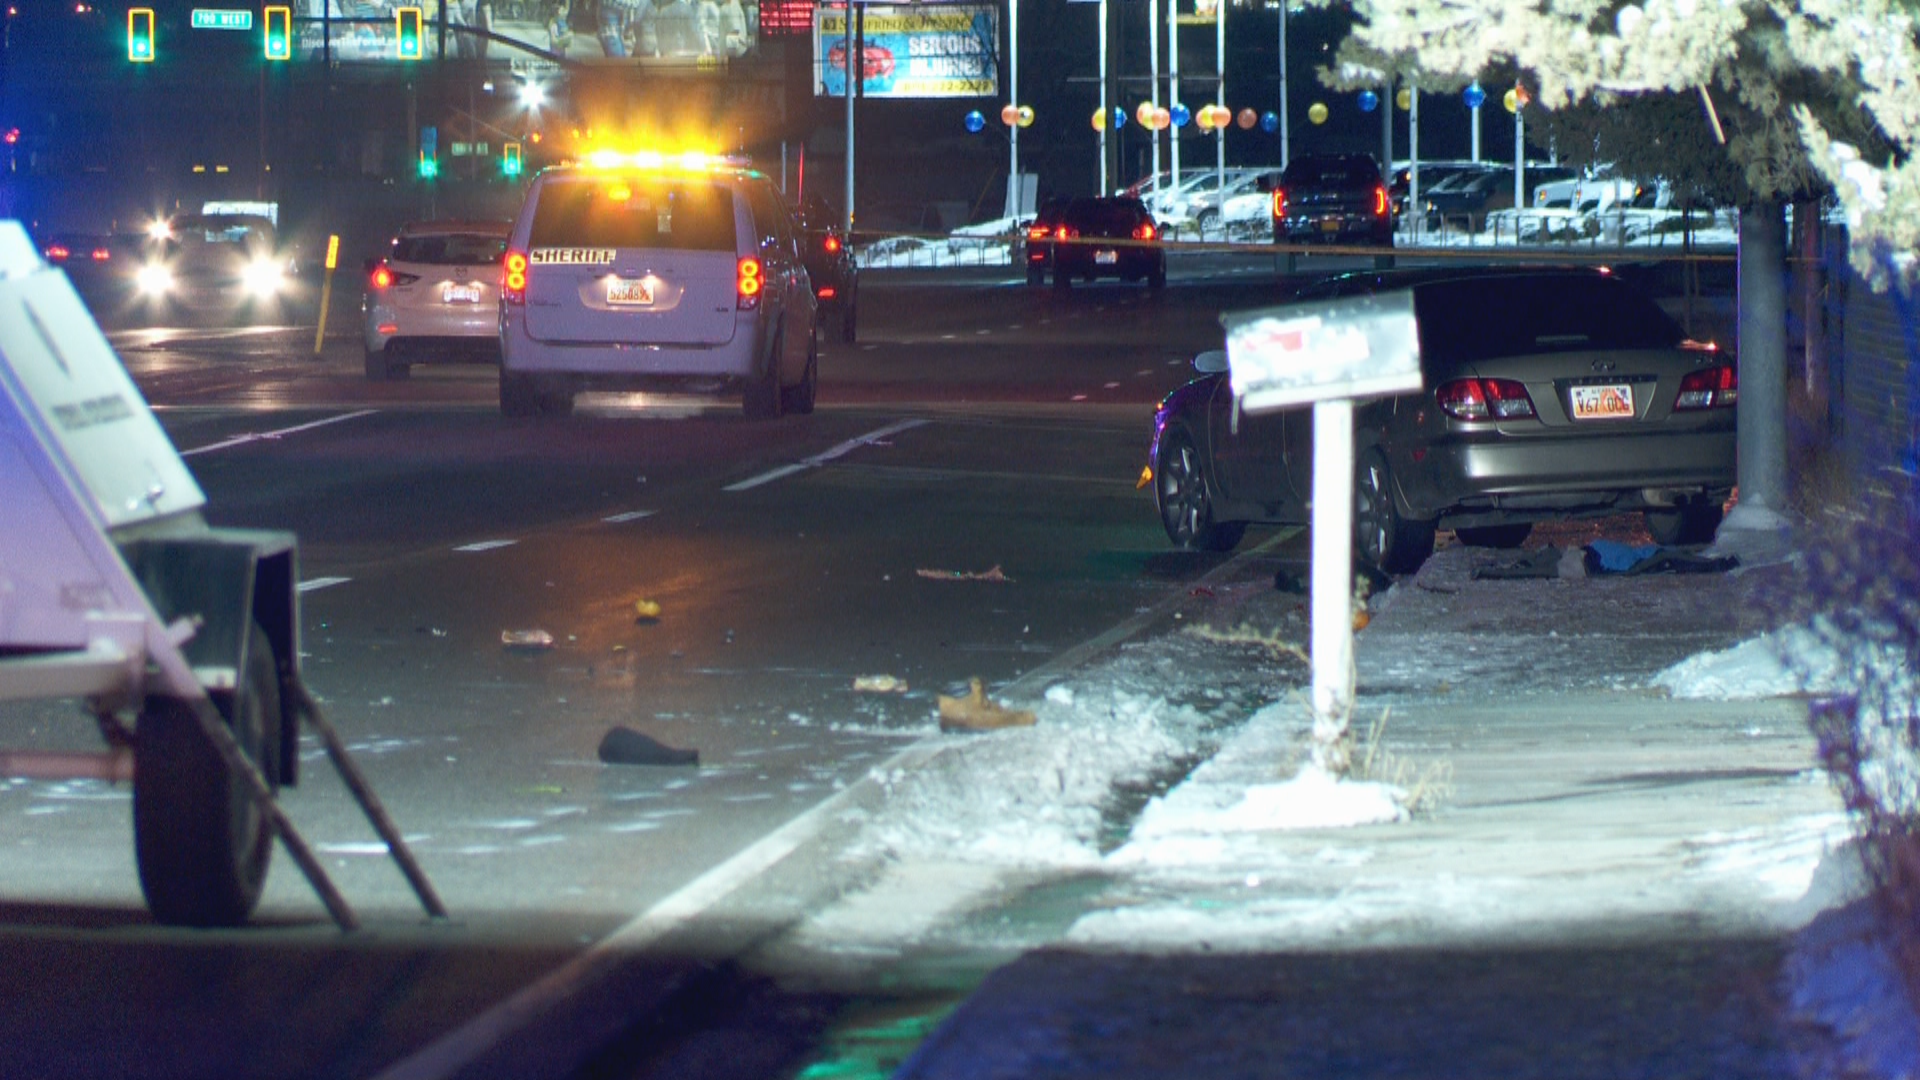 Original scene of the fatal crash. (Photo: KUTV)